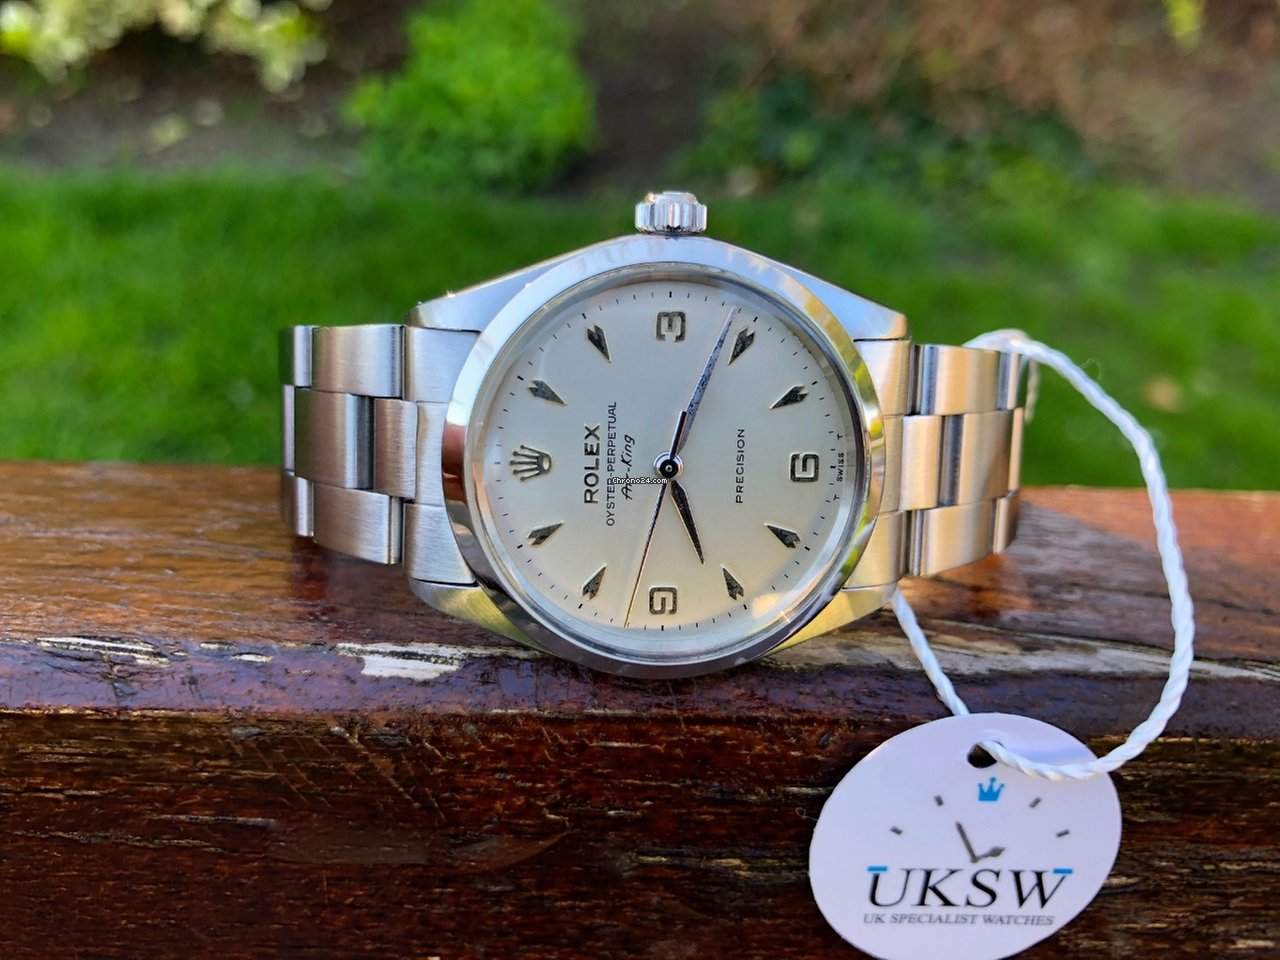 Rolex Air King 5500 3-6-9 - Arrow Head Dial - Vintage 1965 for $5,128 for  sale from a Trusted Seller on Chrono24